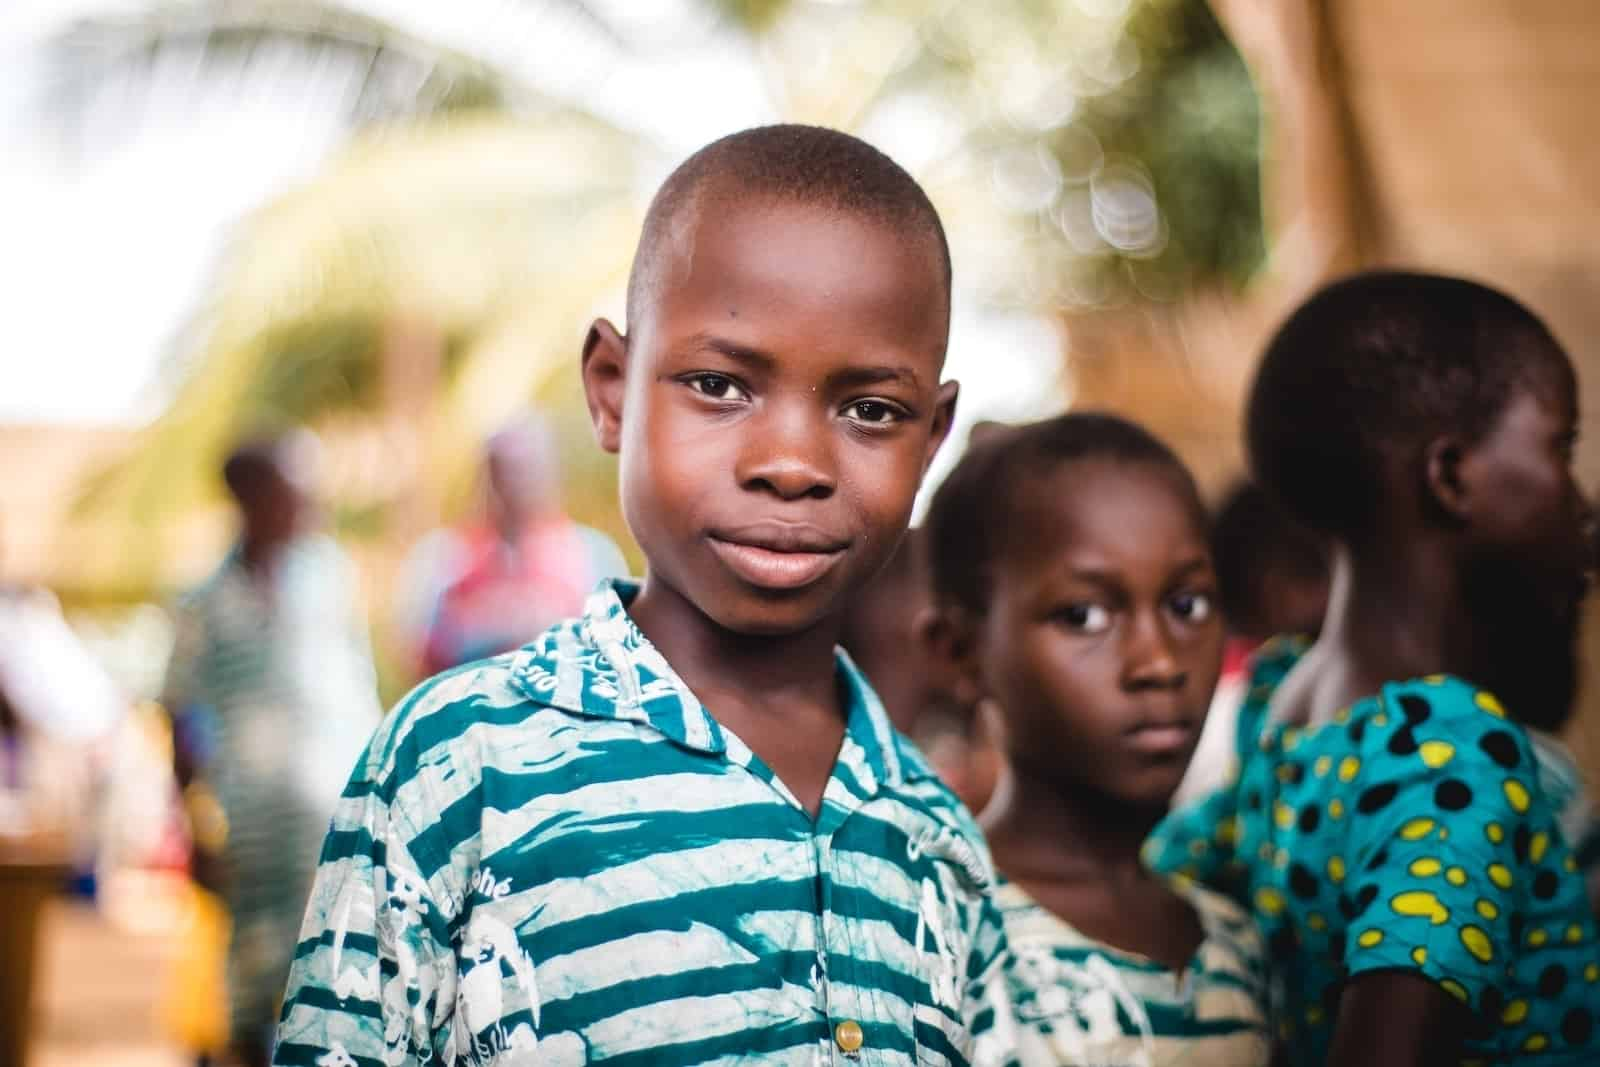 A boy from Togo wearing a green and white shirt looks into the camera. He is surrounded by children wearing similar colors. They stand outside with palm trees in the background.